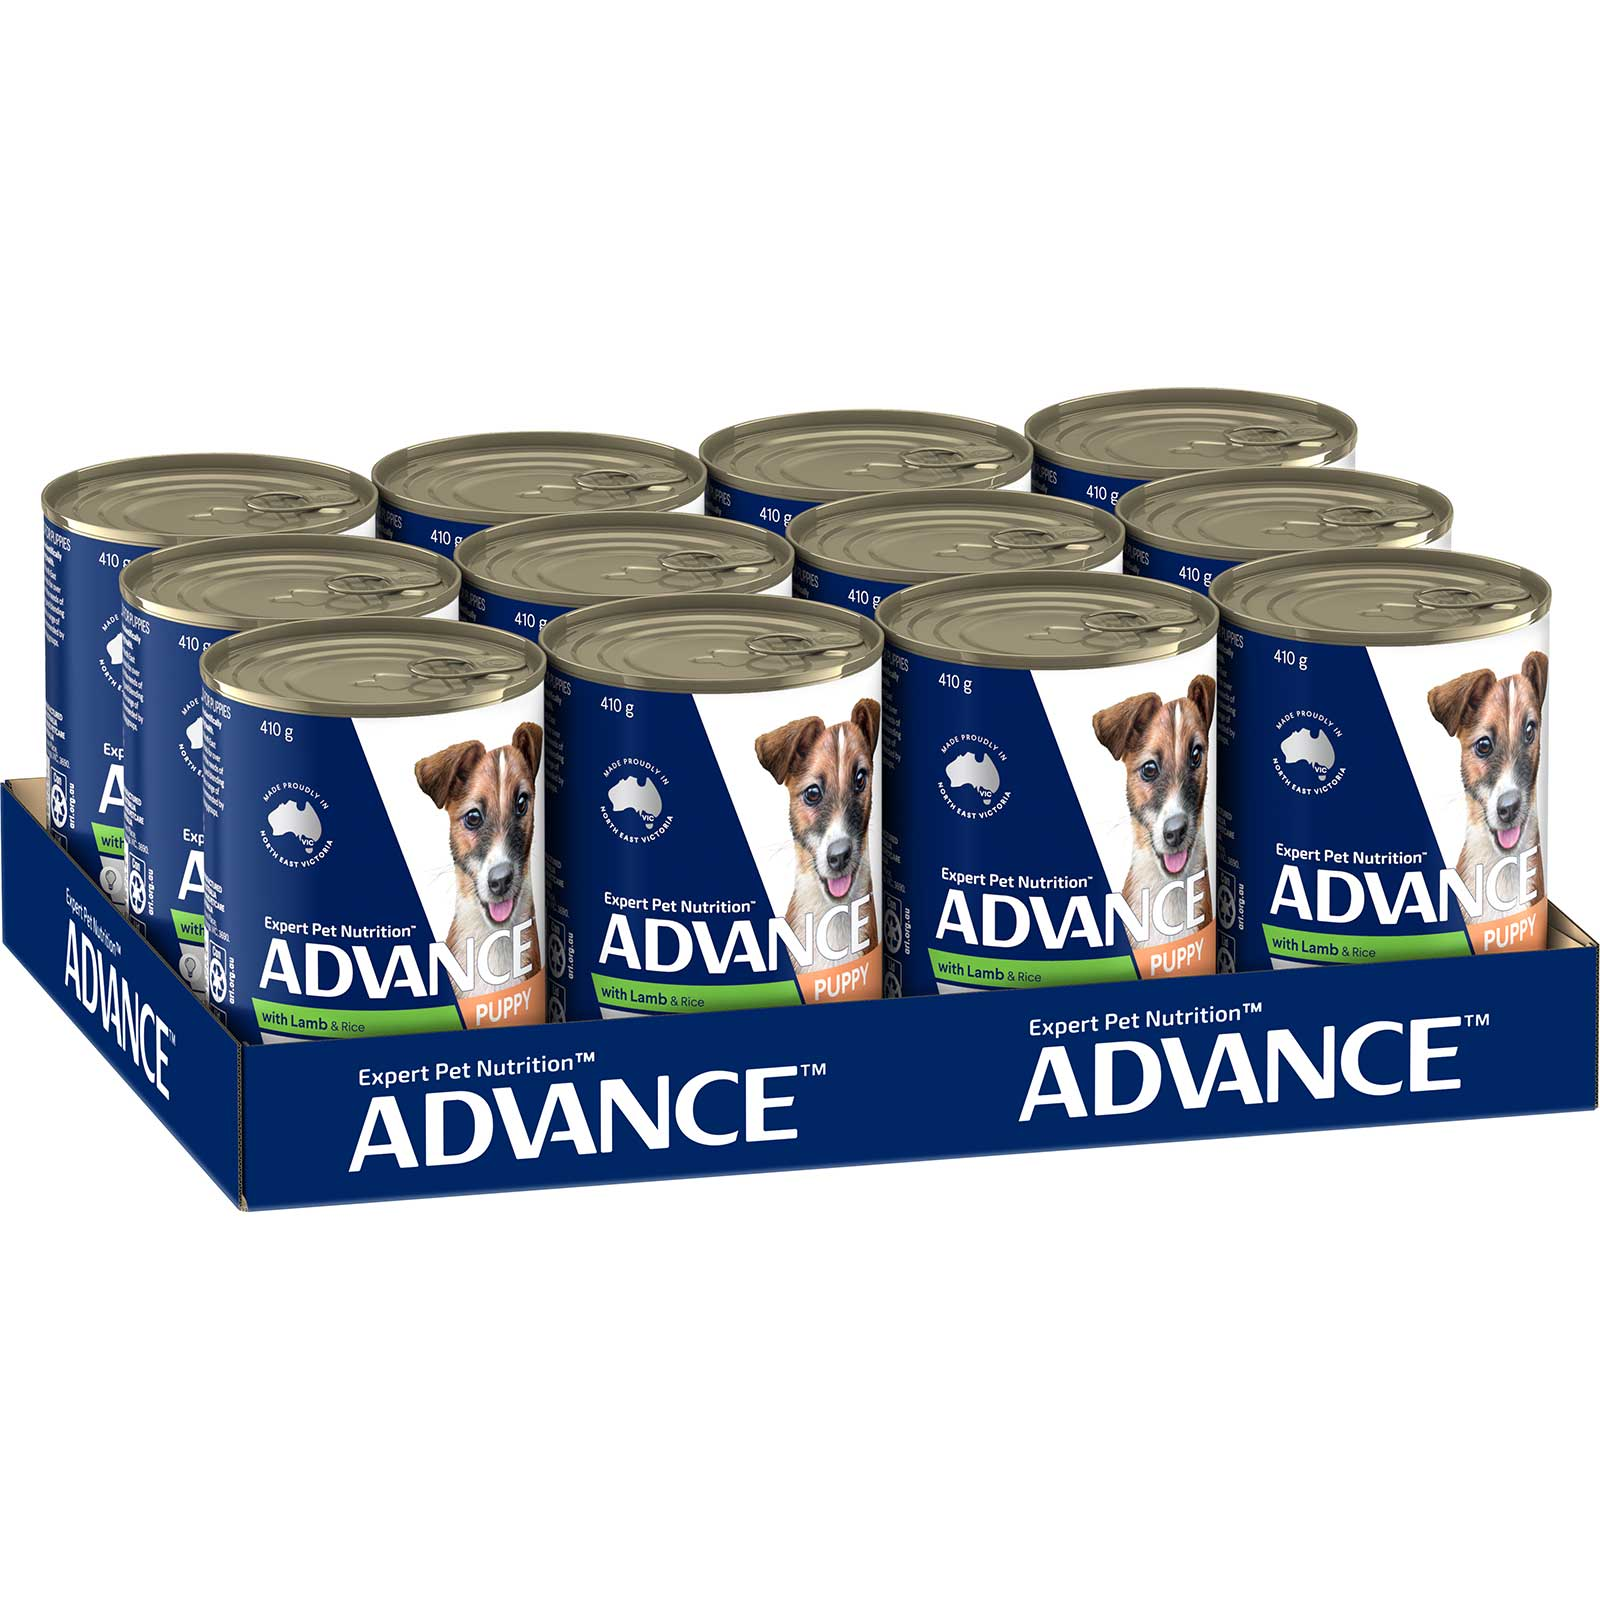 Advance Dog Food Can Puppy All Breed with Lamb & Rice